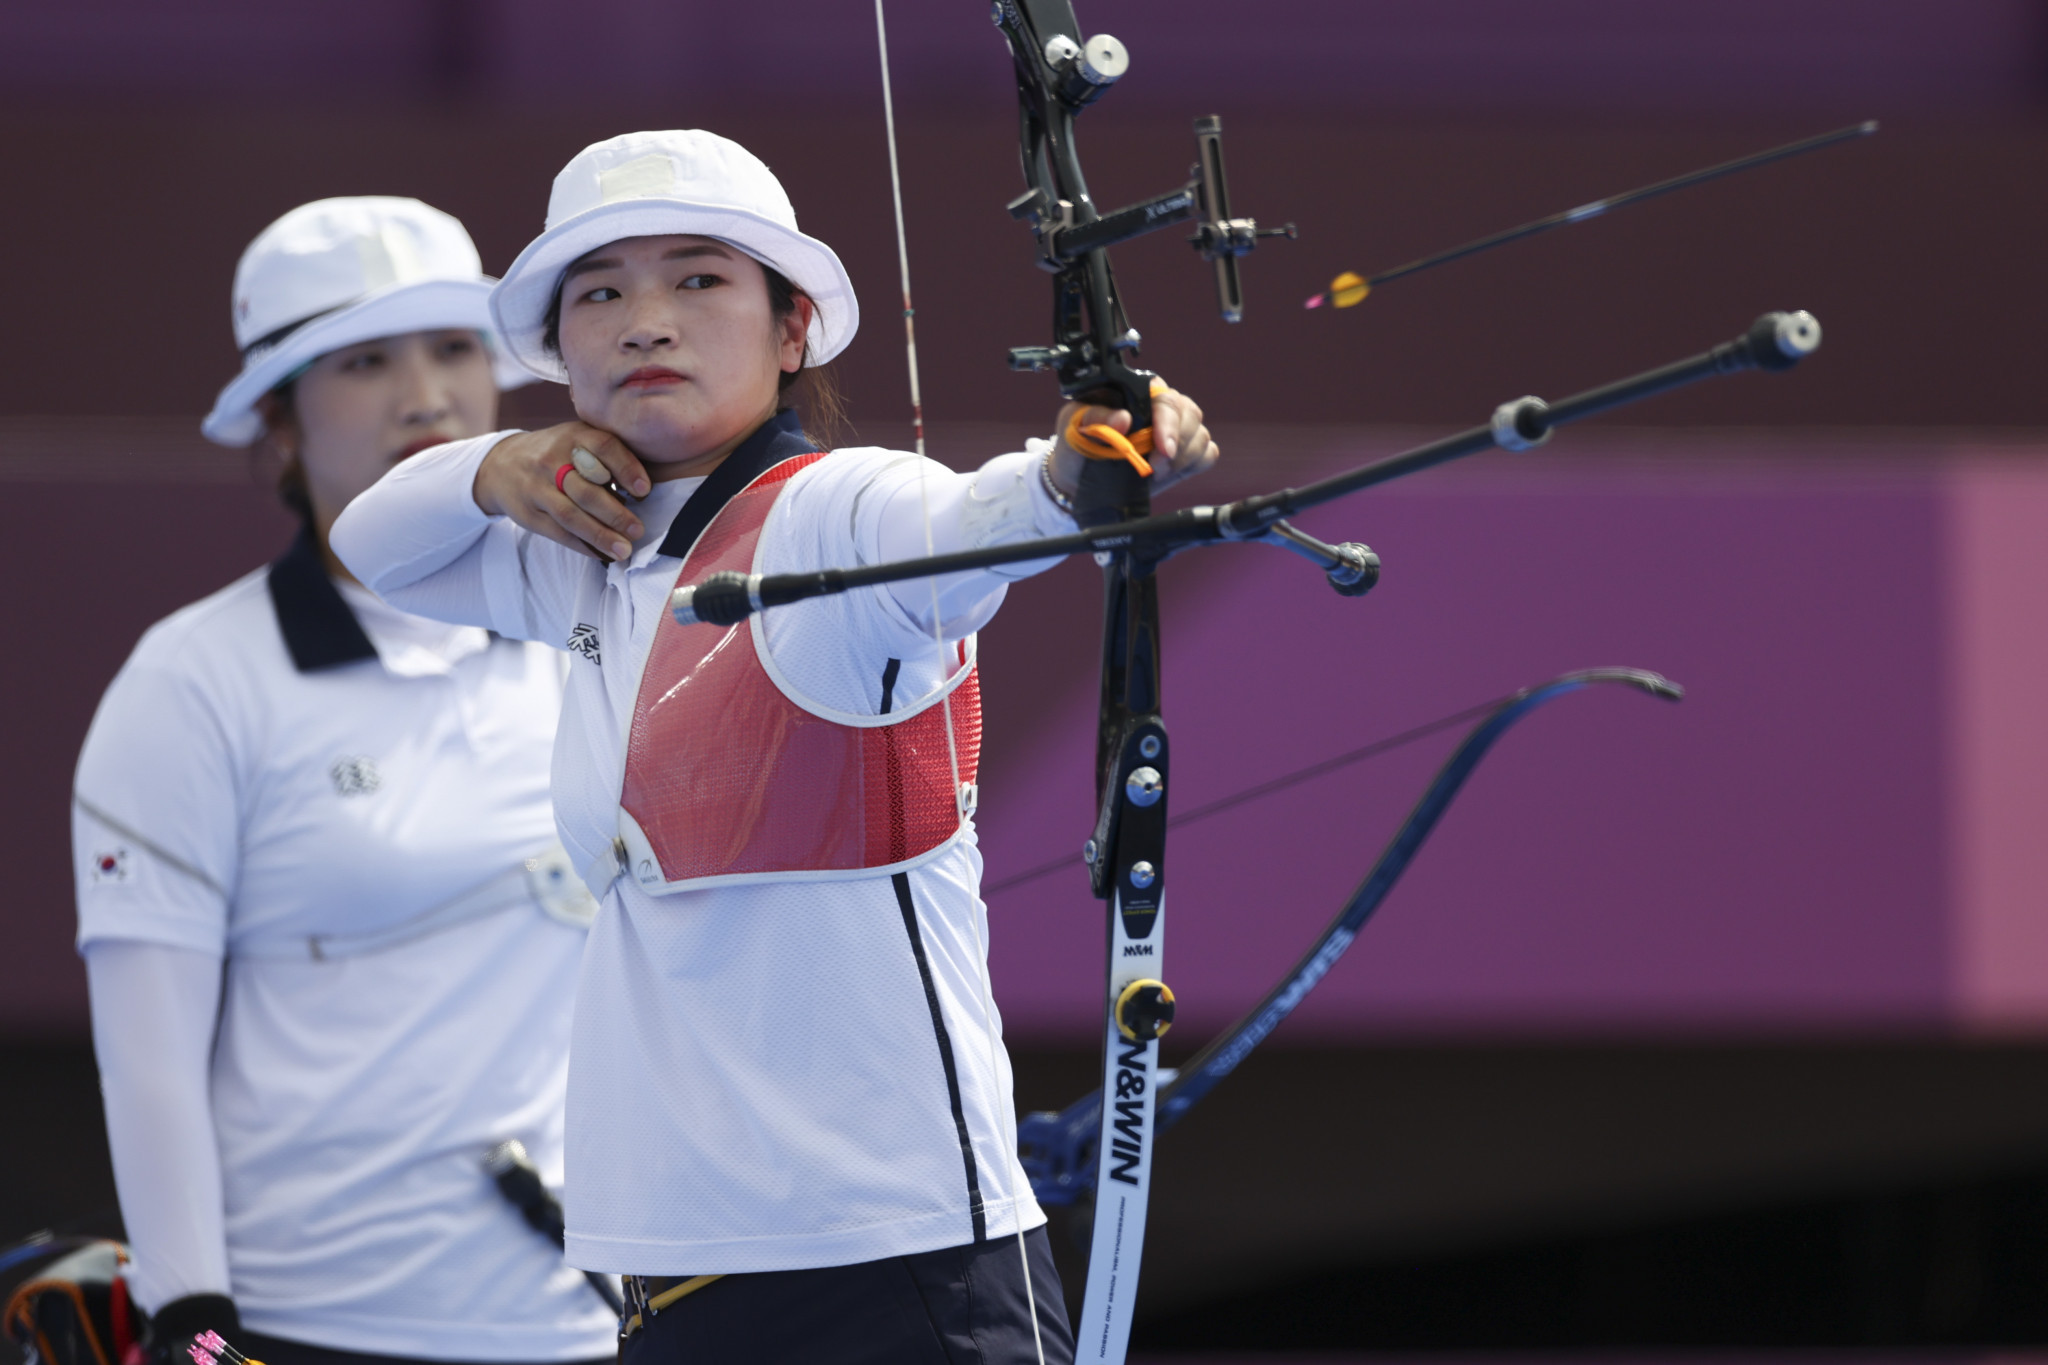 Kang Chae Young claimed her second gold medal of Tokyo 2020 as a member of South Korea's archery team ©Getty Images